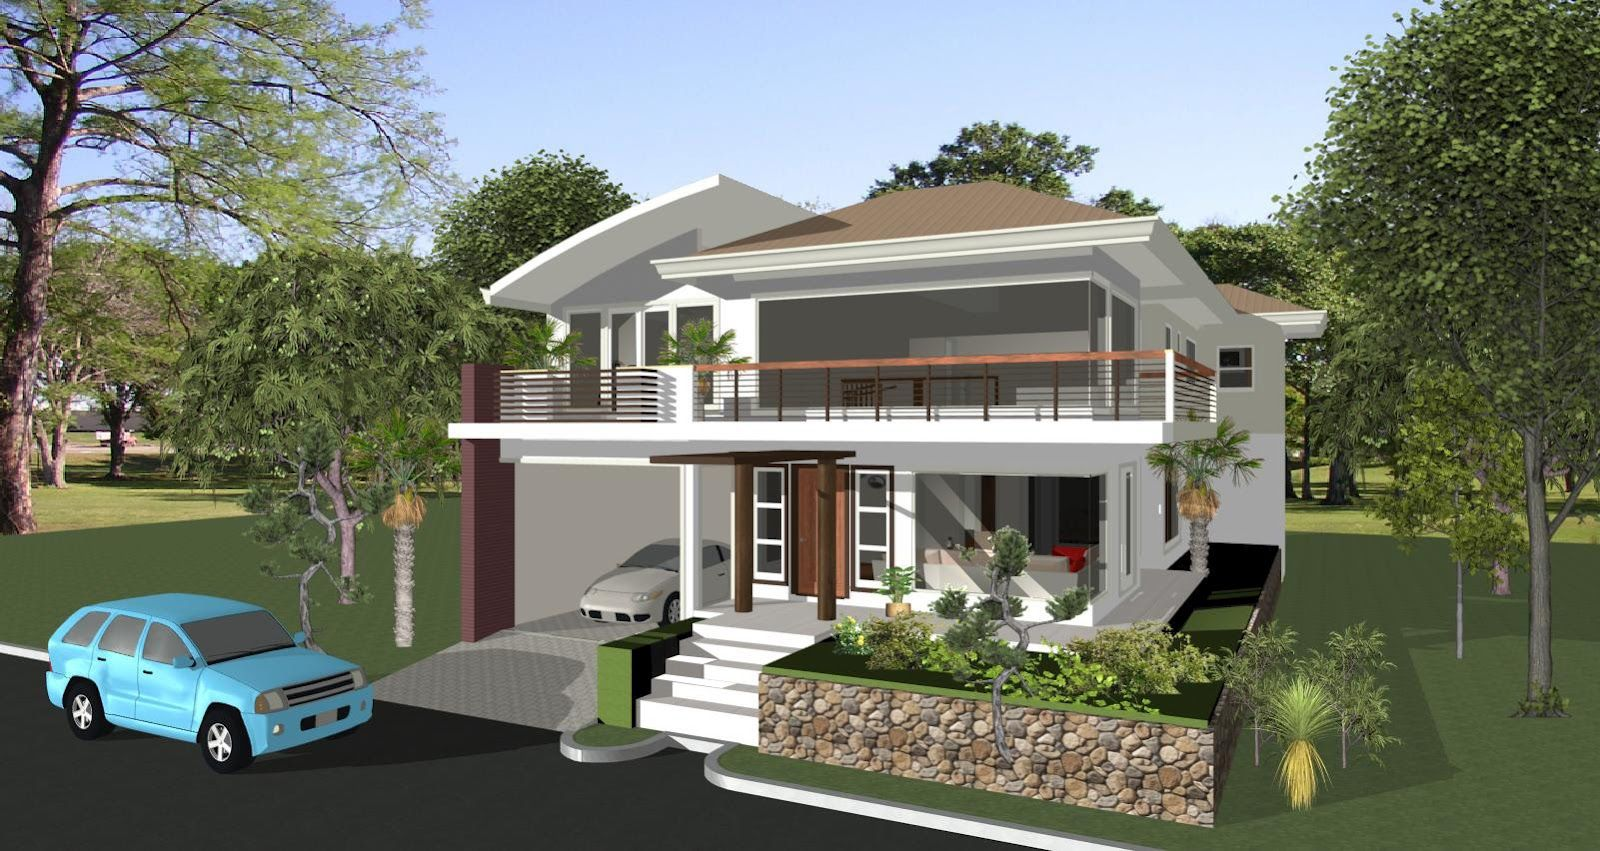 Merveilleux Dream Home Designs | Erecre Group Realty, Design And Construction